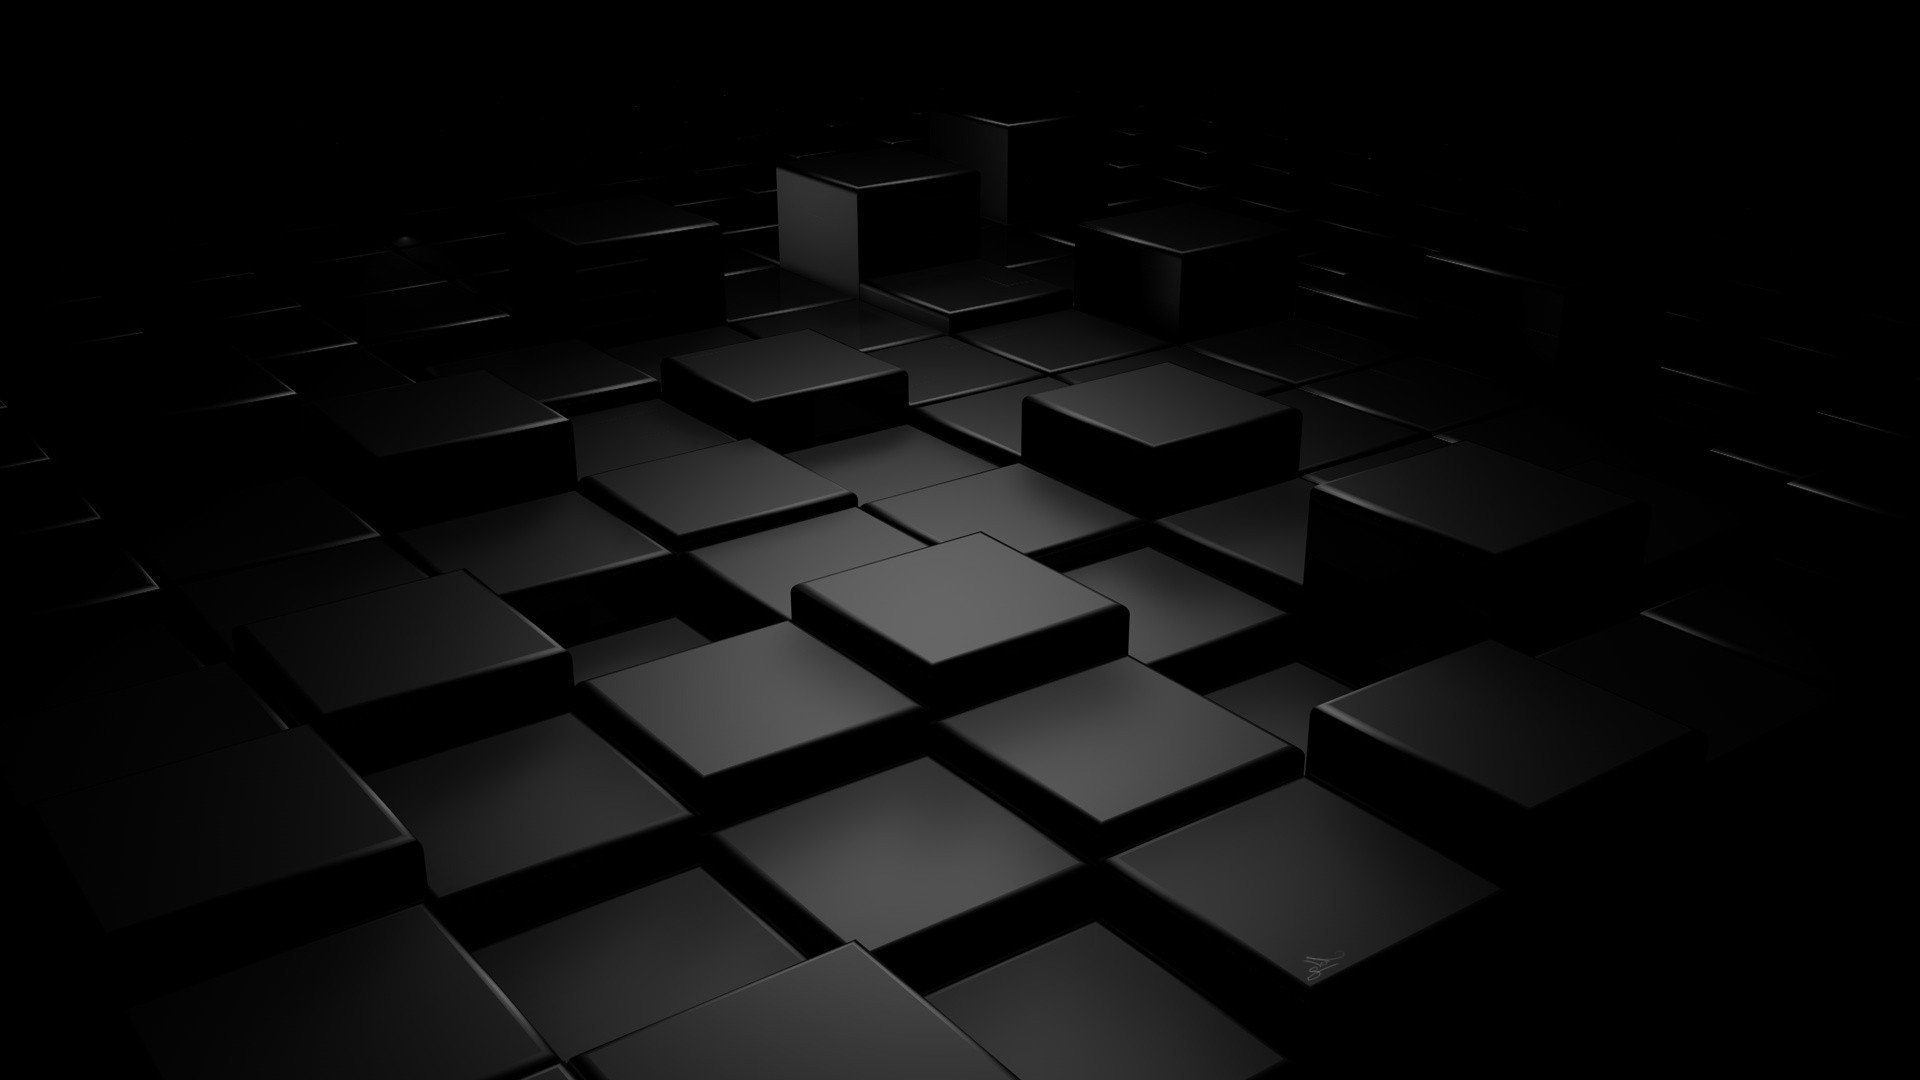 Black-In-FHD-For-Free-Download-For-Android-Desktop-wallpaper-wpc5802884